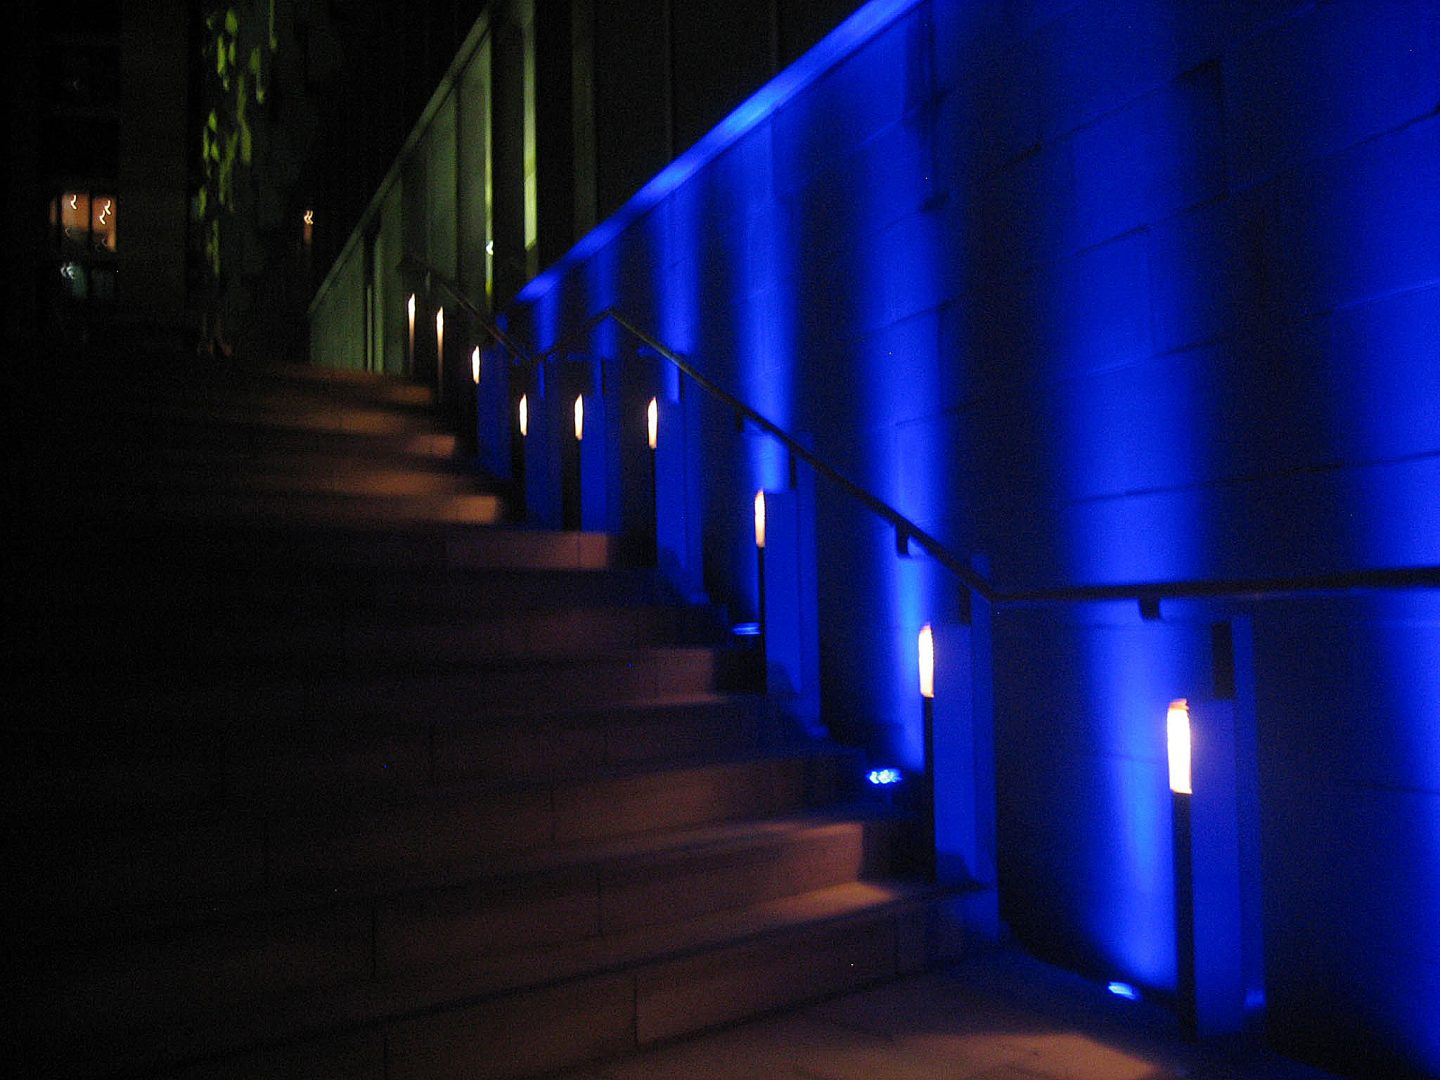 St Paul's Place | Public realm lighting | The Light Lab